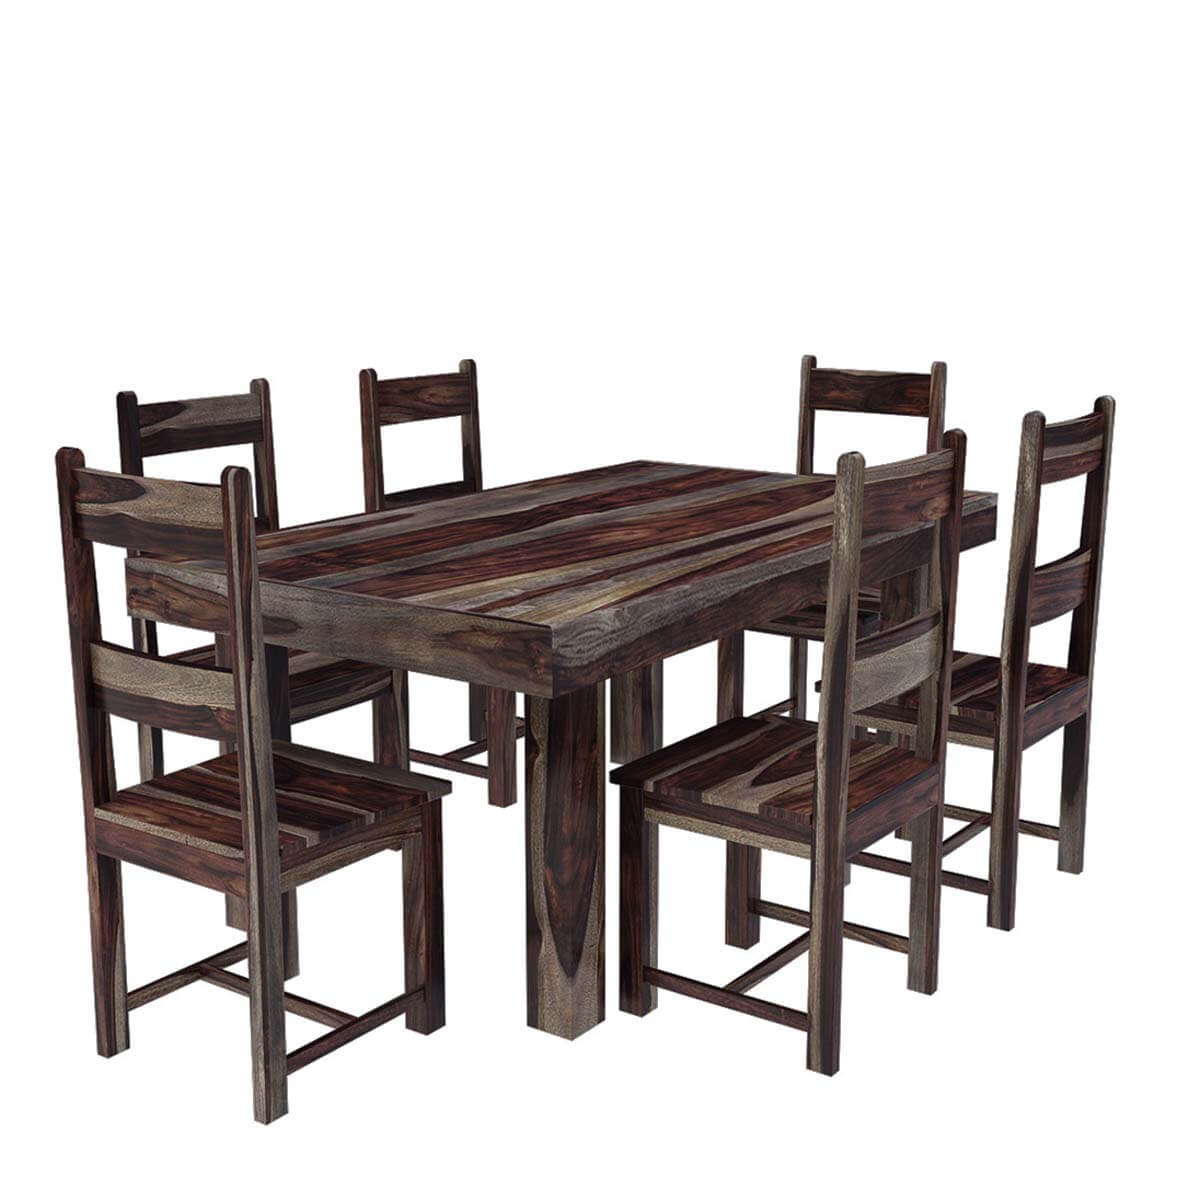 Frisco modern solid wood casual rustic dining room table for Solid wood dining room table and chairs